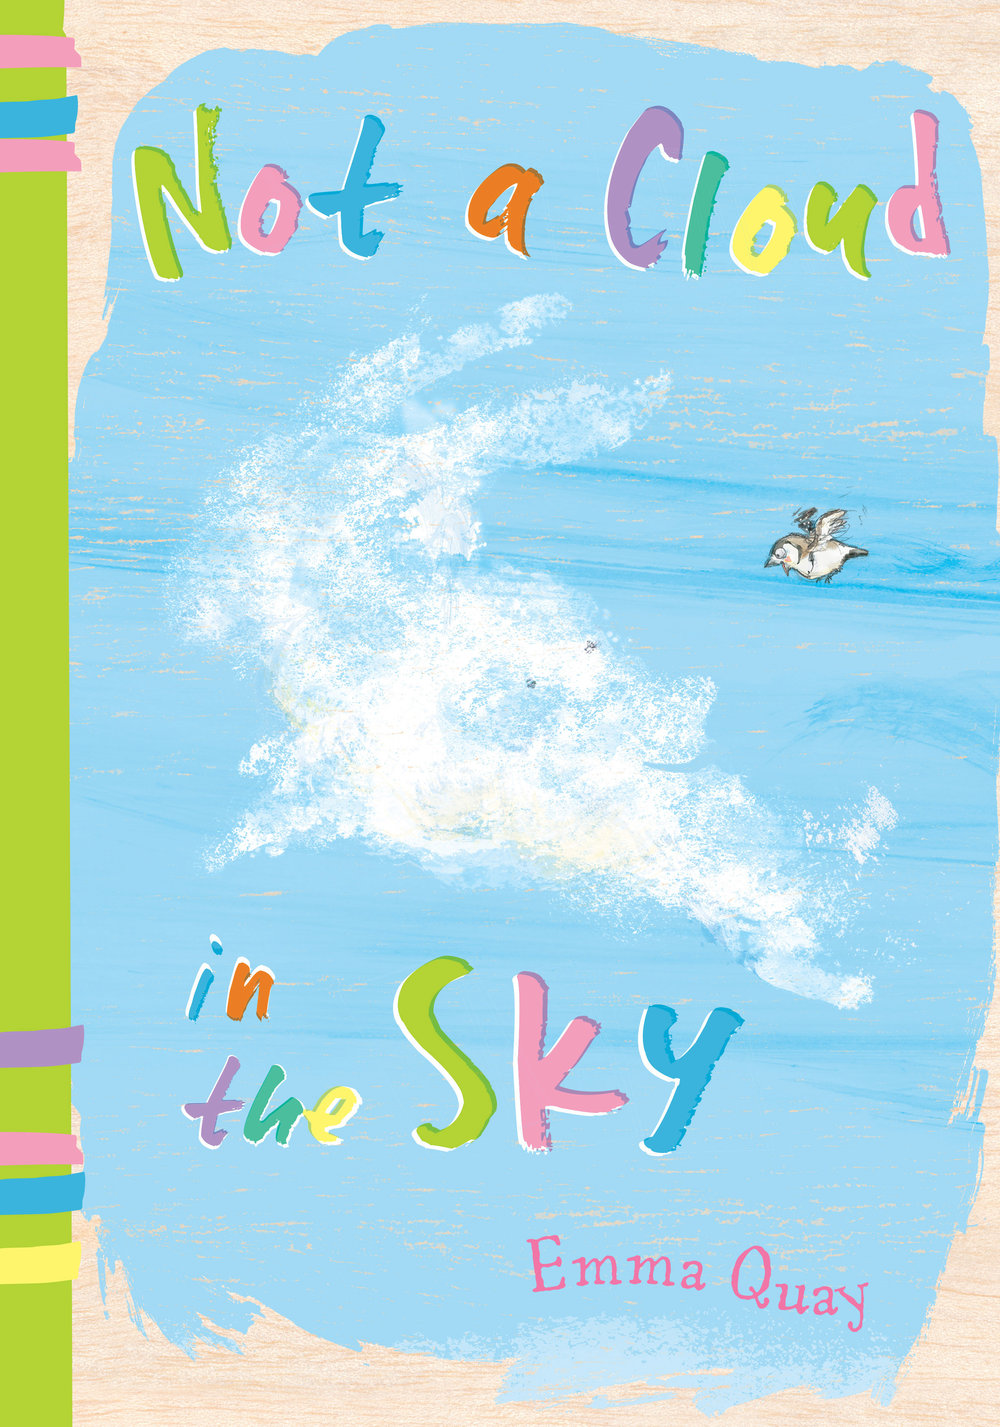 NOT A CLOUD IN THE SKY by Emma Quay (ABC Books) - www.emmaquay.com